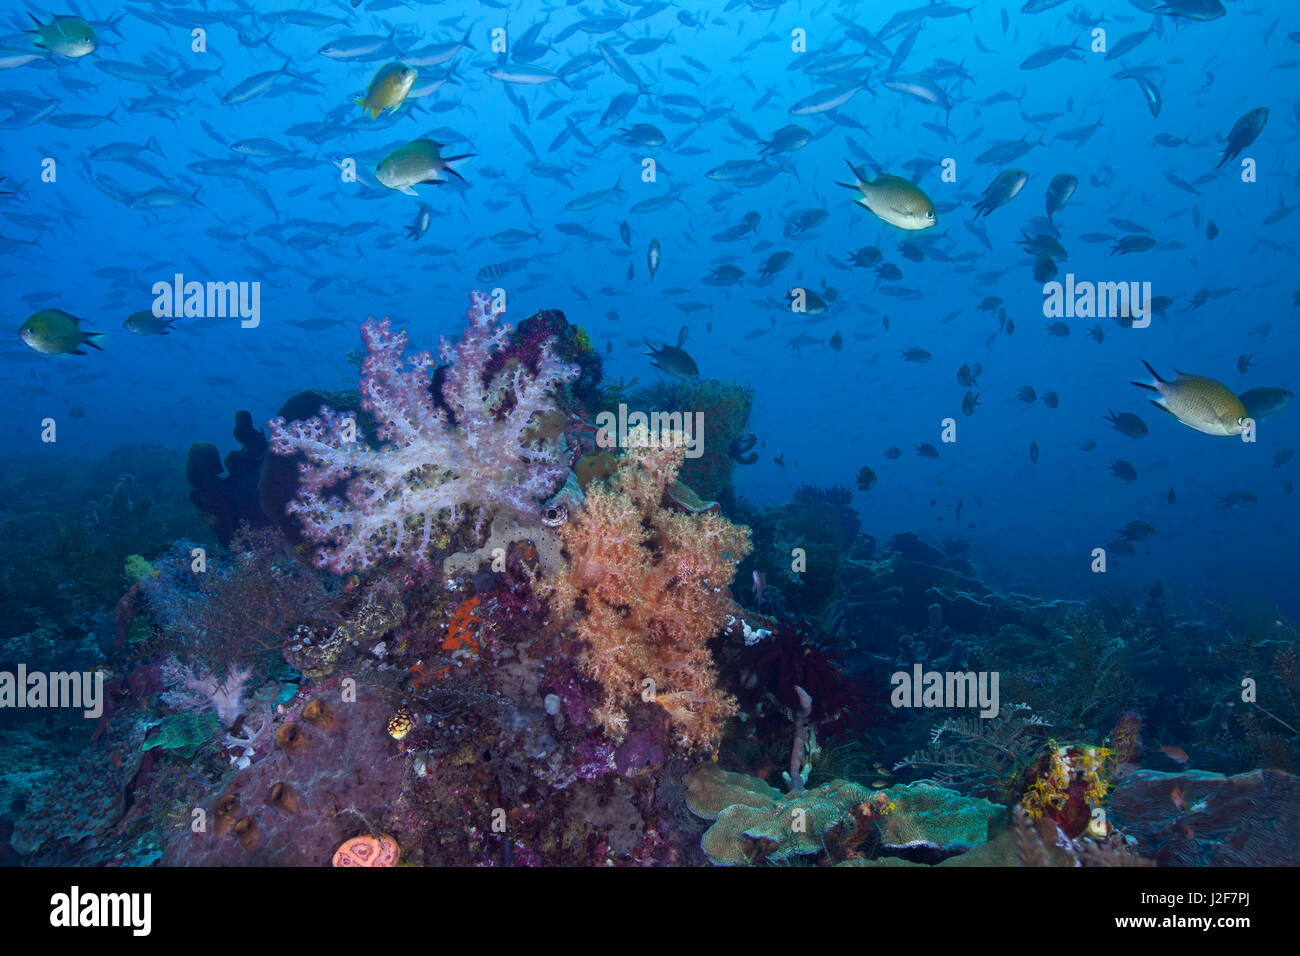 Seascape image of a colorful coral reef, remote and pristine in the heart of the coral triangle. Raja Ampat, Indonesia. Stock Photo